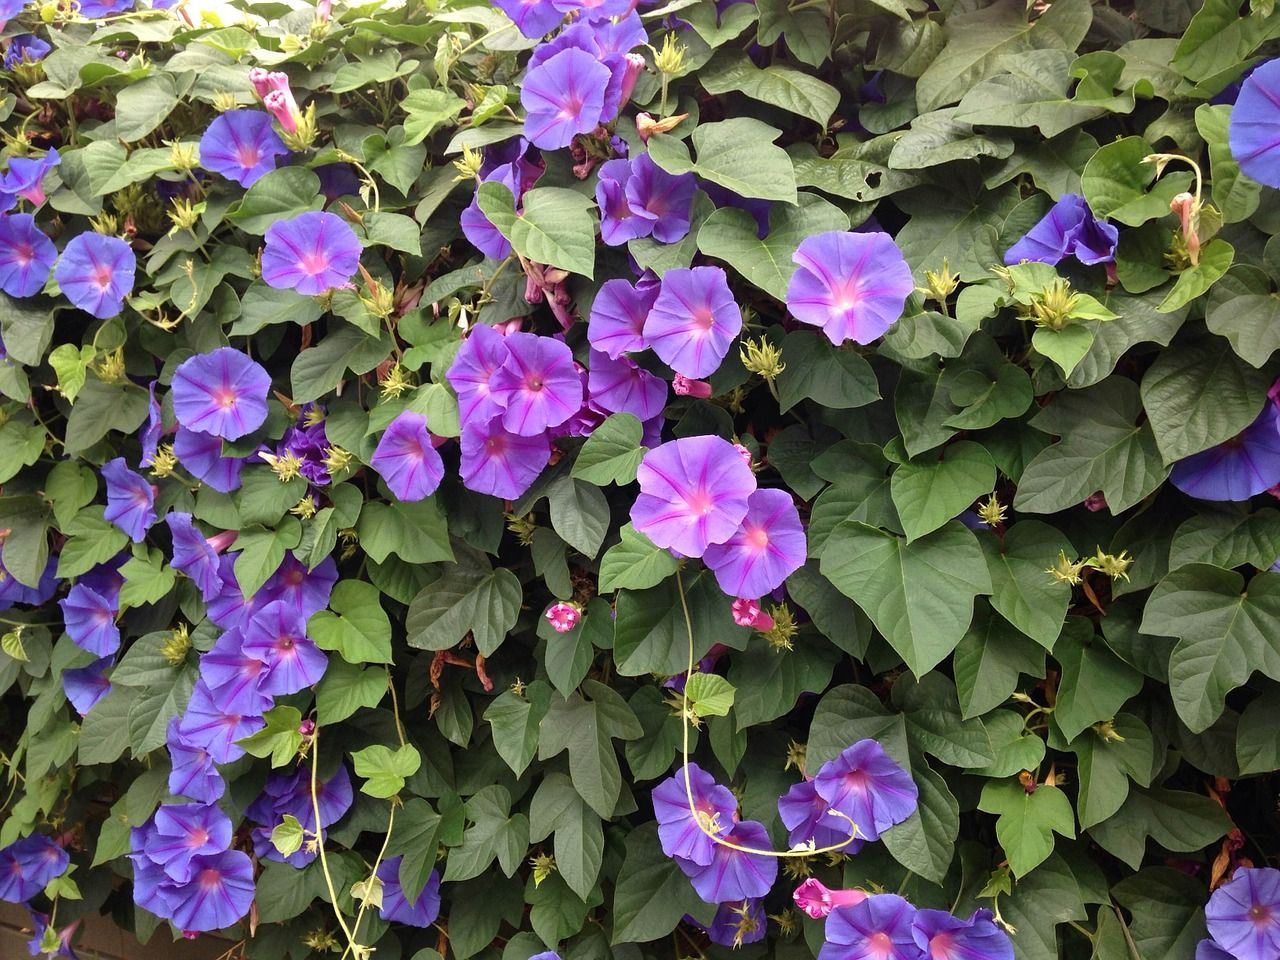 Free Image On Pixabay Blue Flowers Morning Glory Flowering Vines Climbing Plants Garden Vines